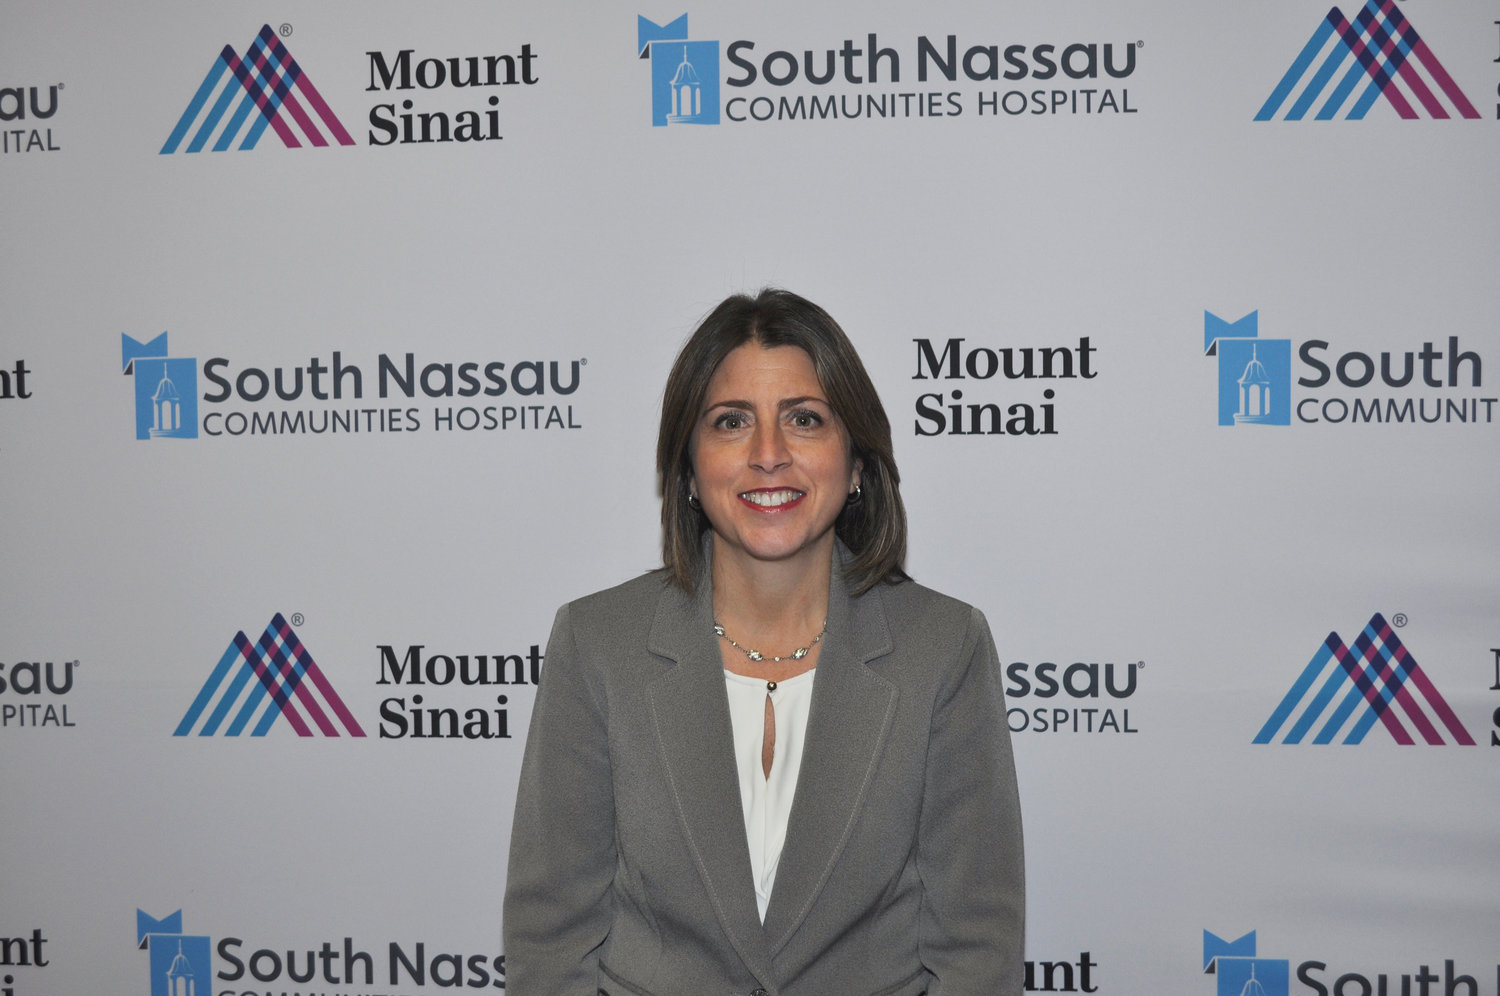 Long Beach resident Stacey Conklin was named the new chief nursing officer and senior vice president of patient care services at South Nassau Communities Hospital.